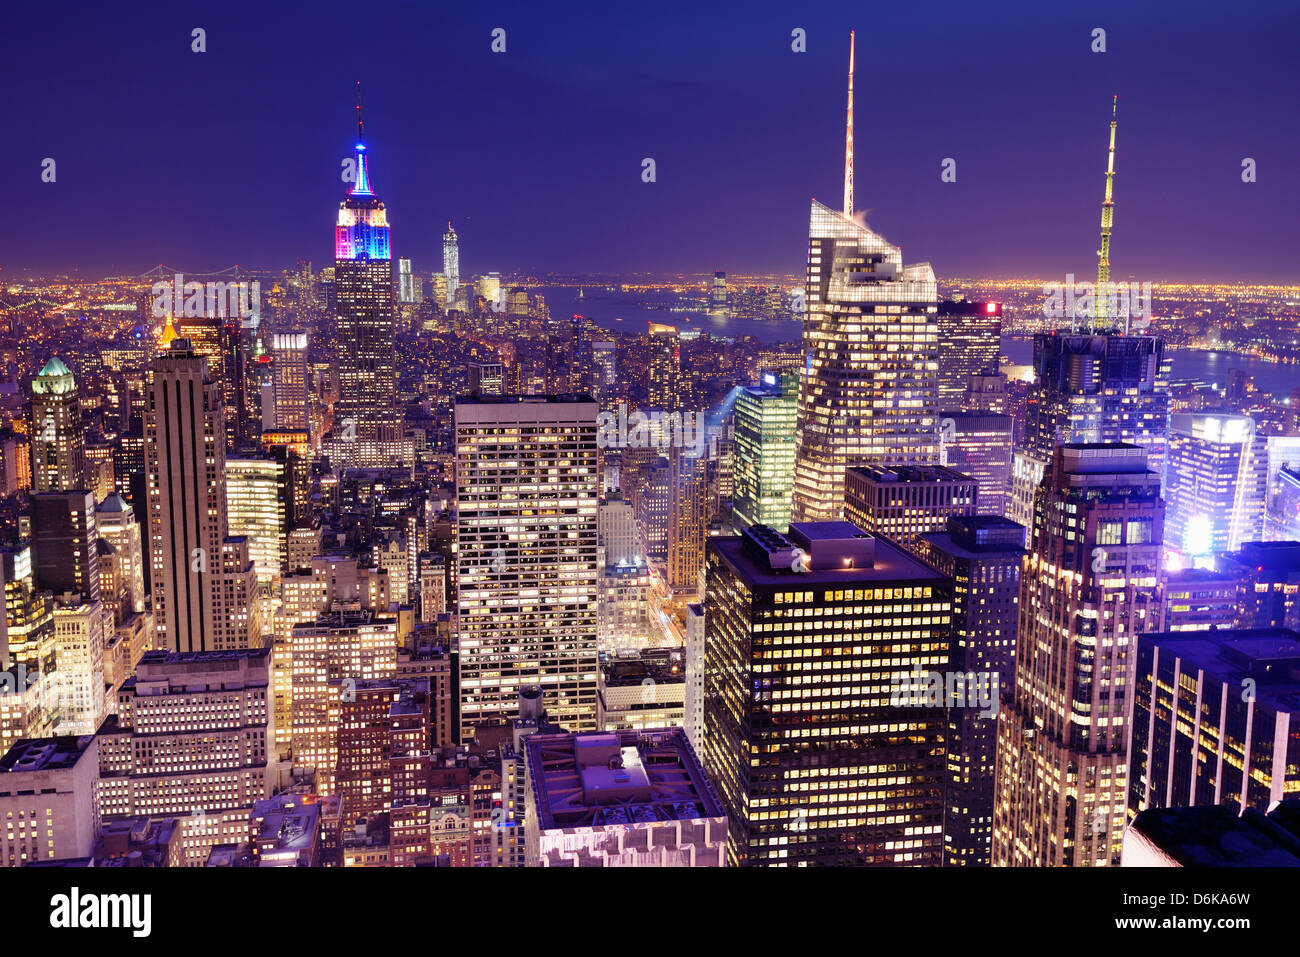 New York City viewed from above. - Stock Image